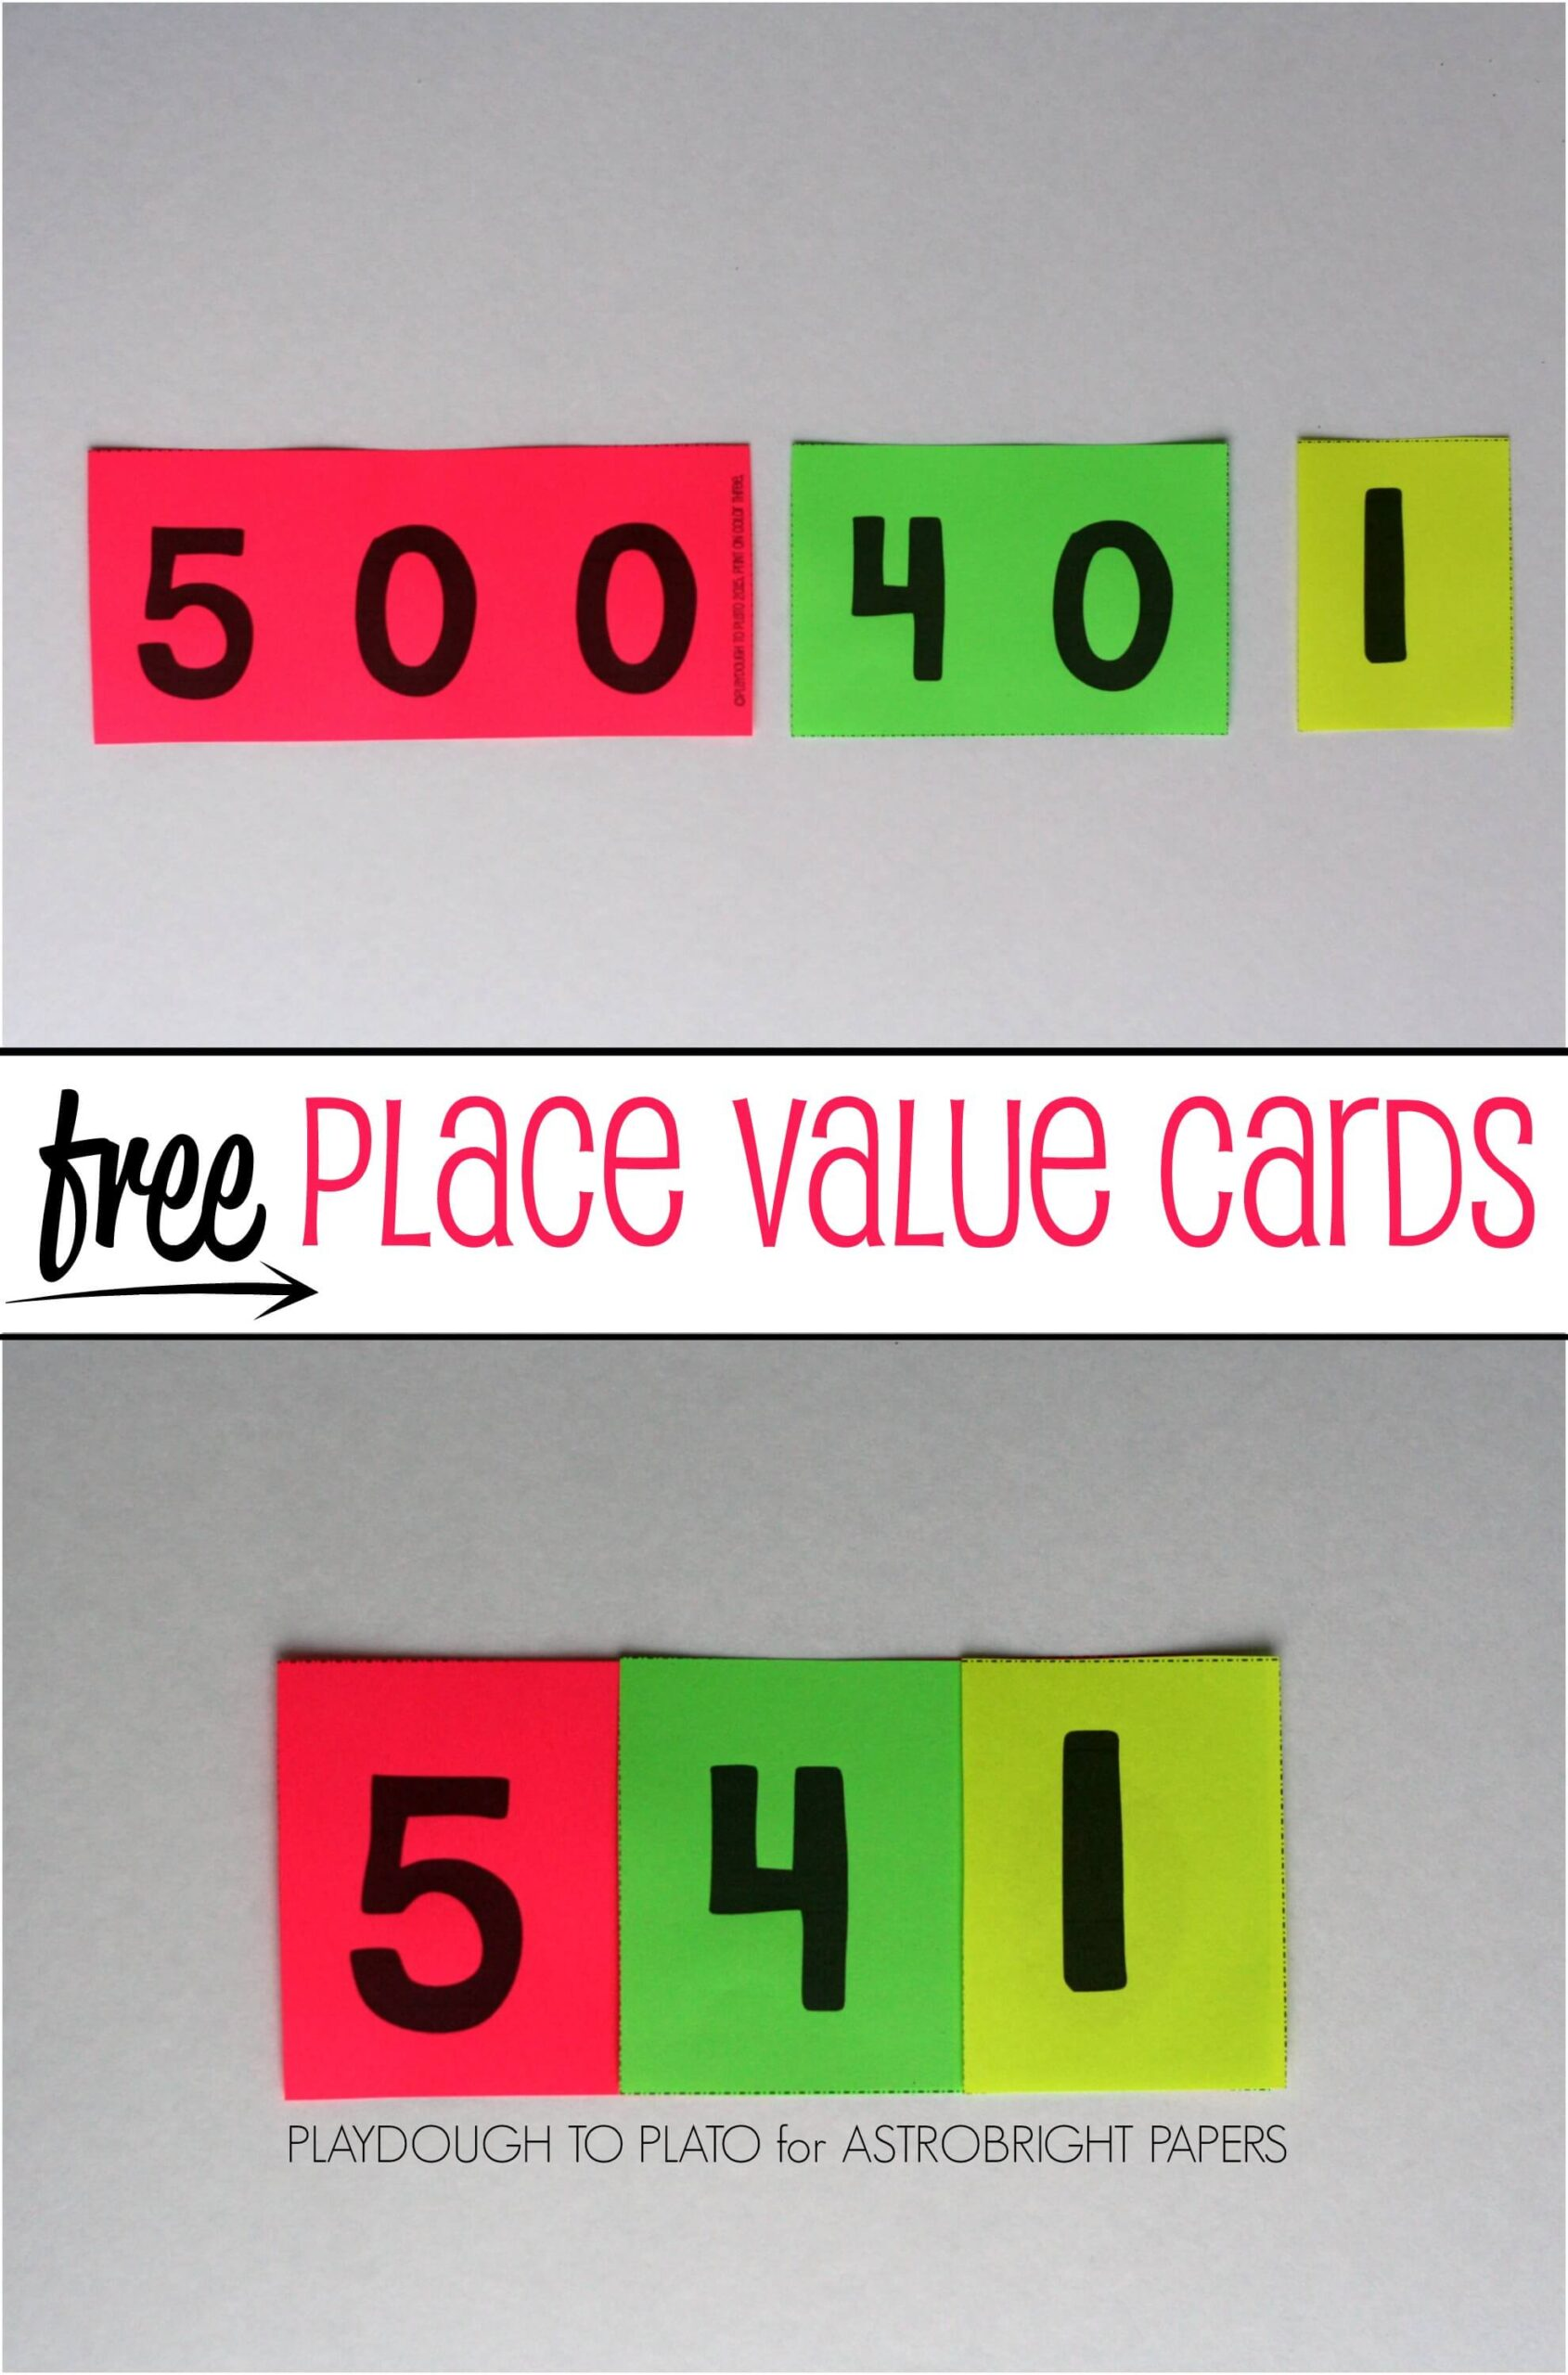 Place Value Cards #Colorize